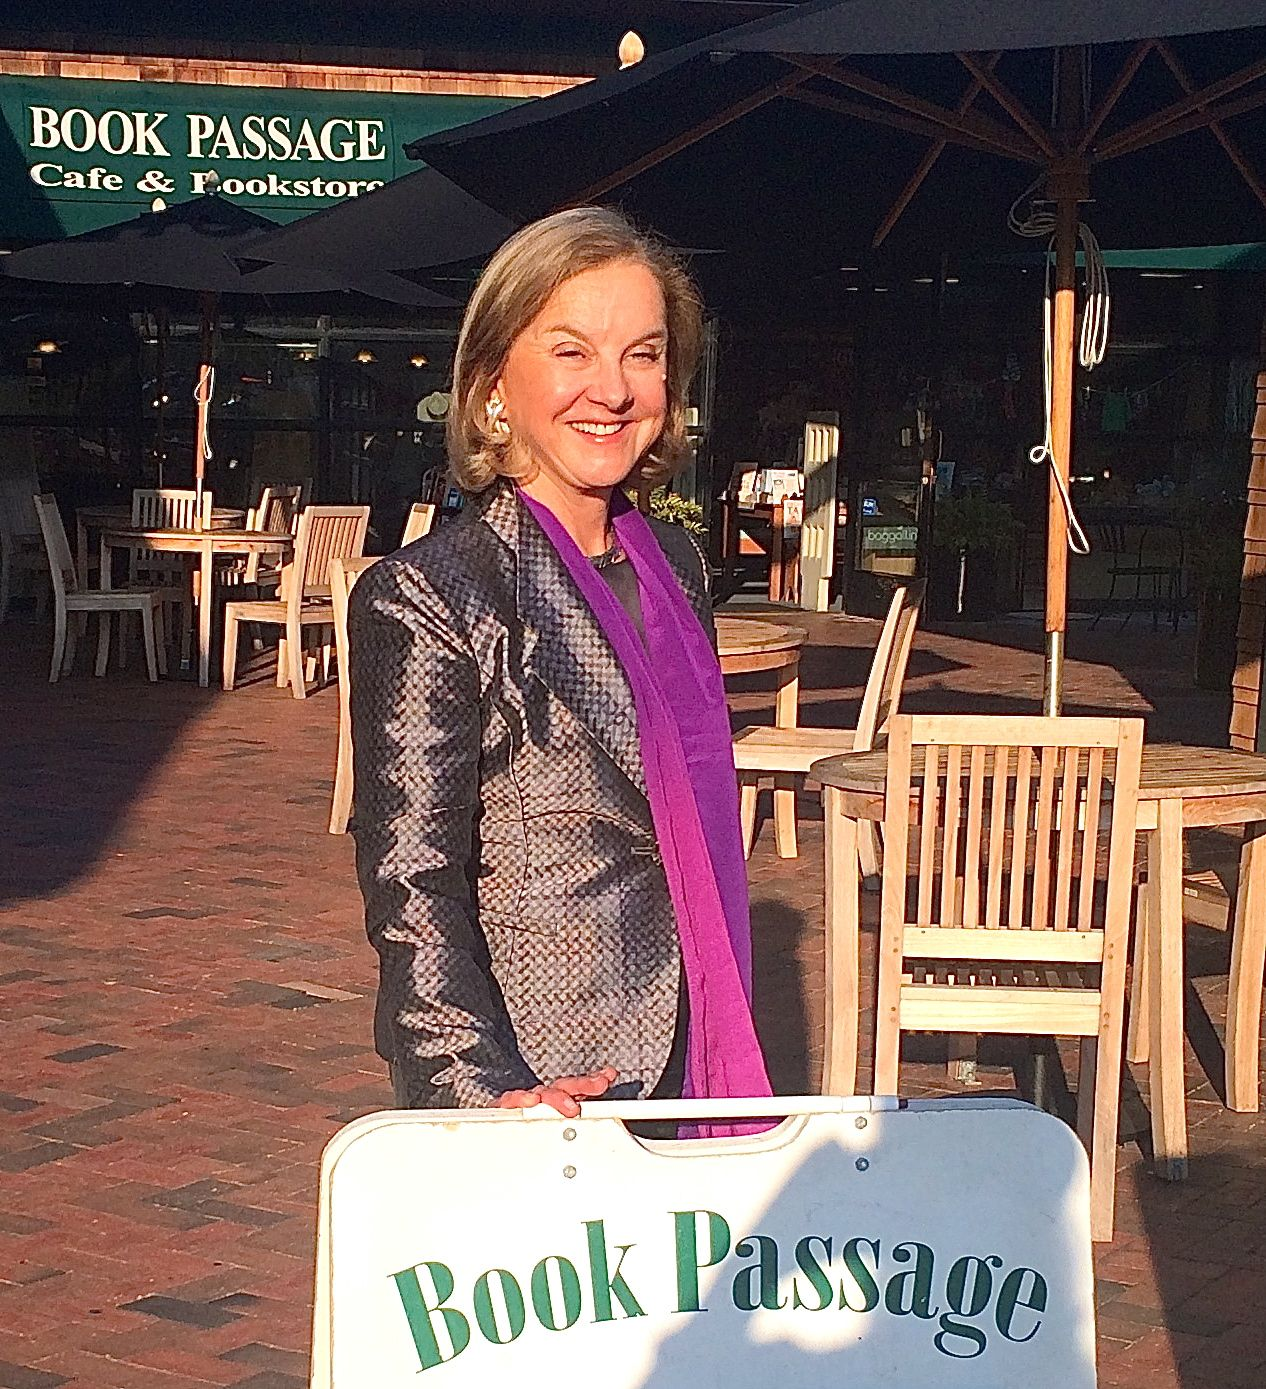 Great  to see old pals and Facebook friends at Book Passage reading!